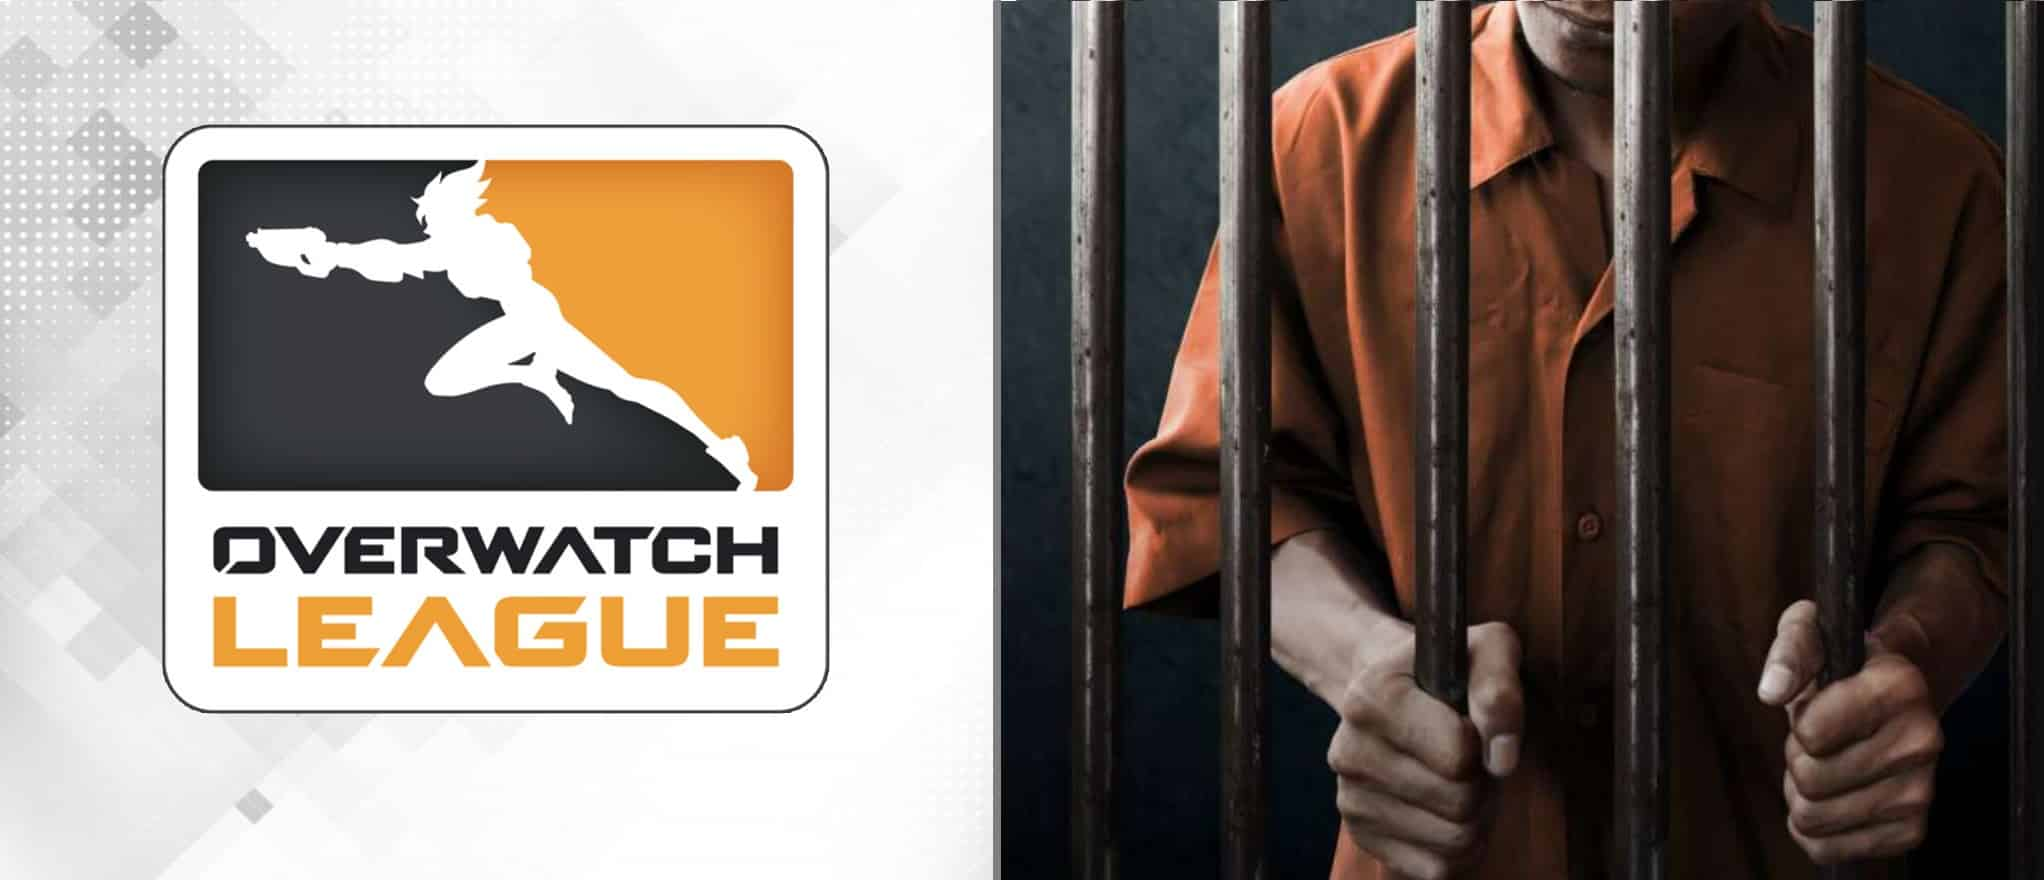 Overwatch League Esports Players Punished Ahead Season 2